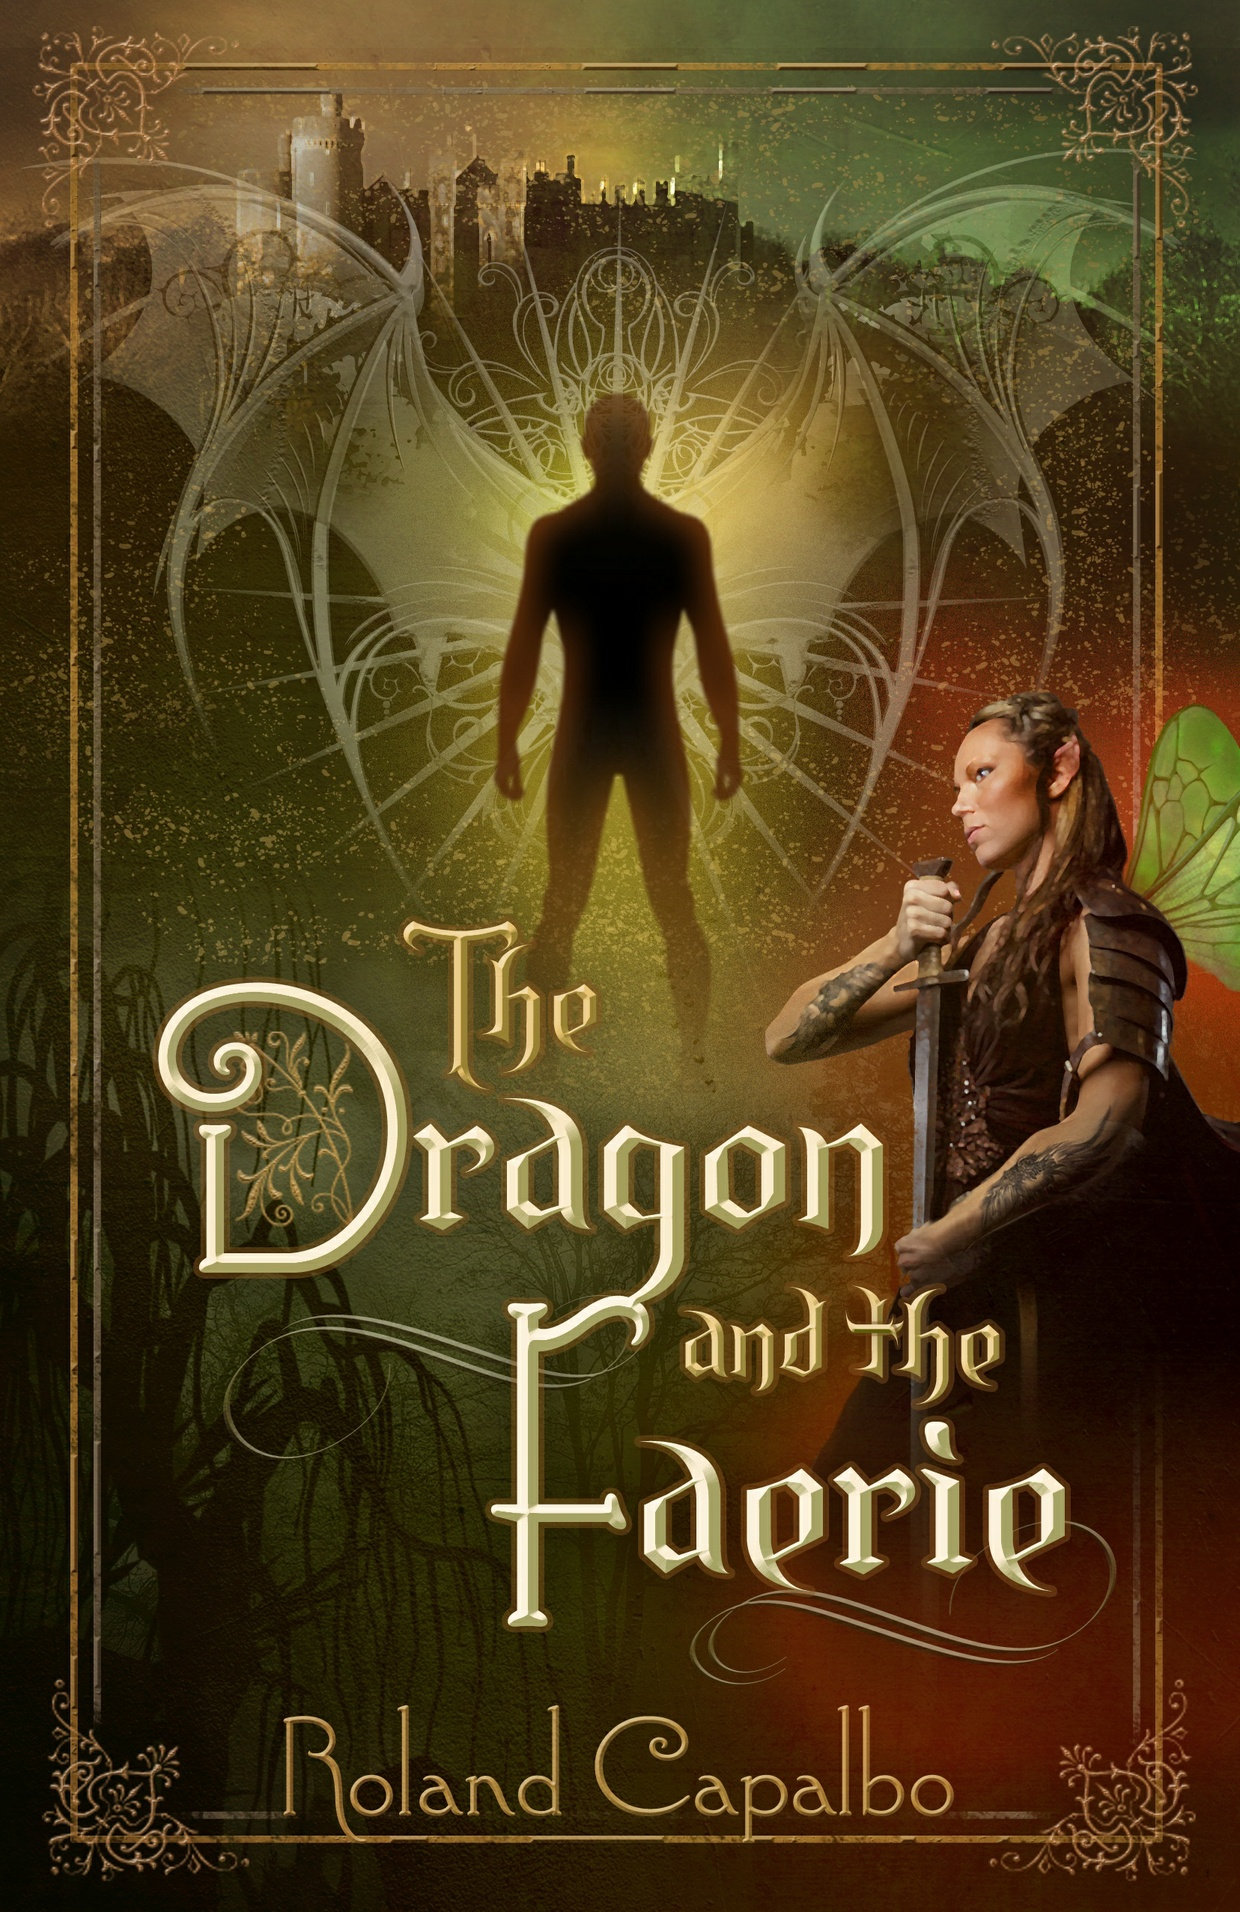 The Dragon and the Faerie Ebook by Roland Capalbo